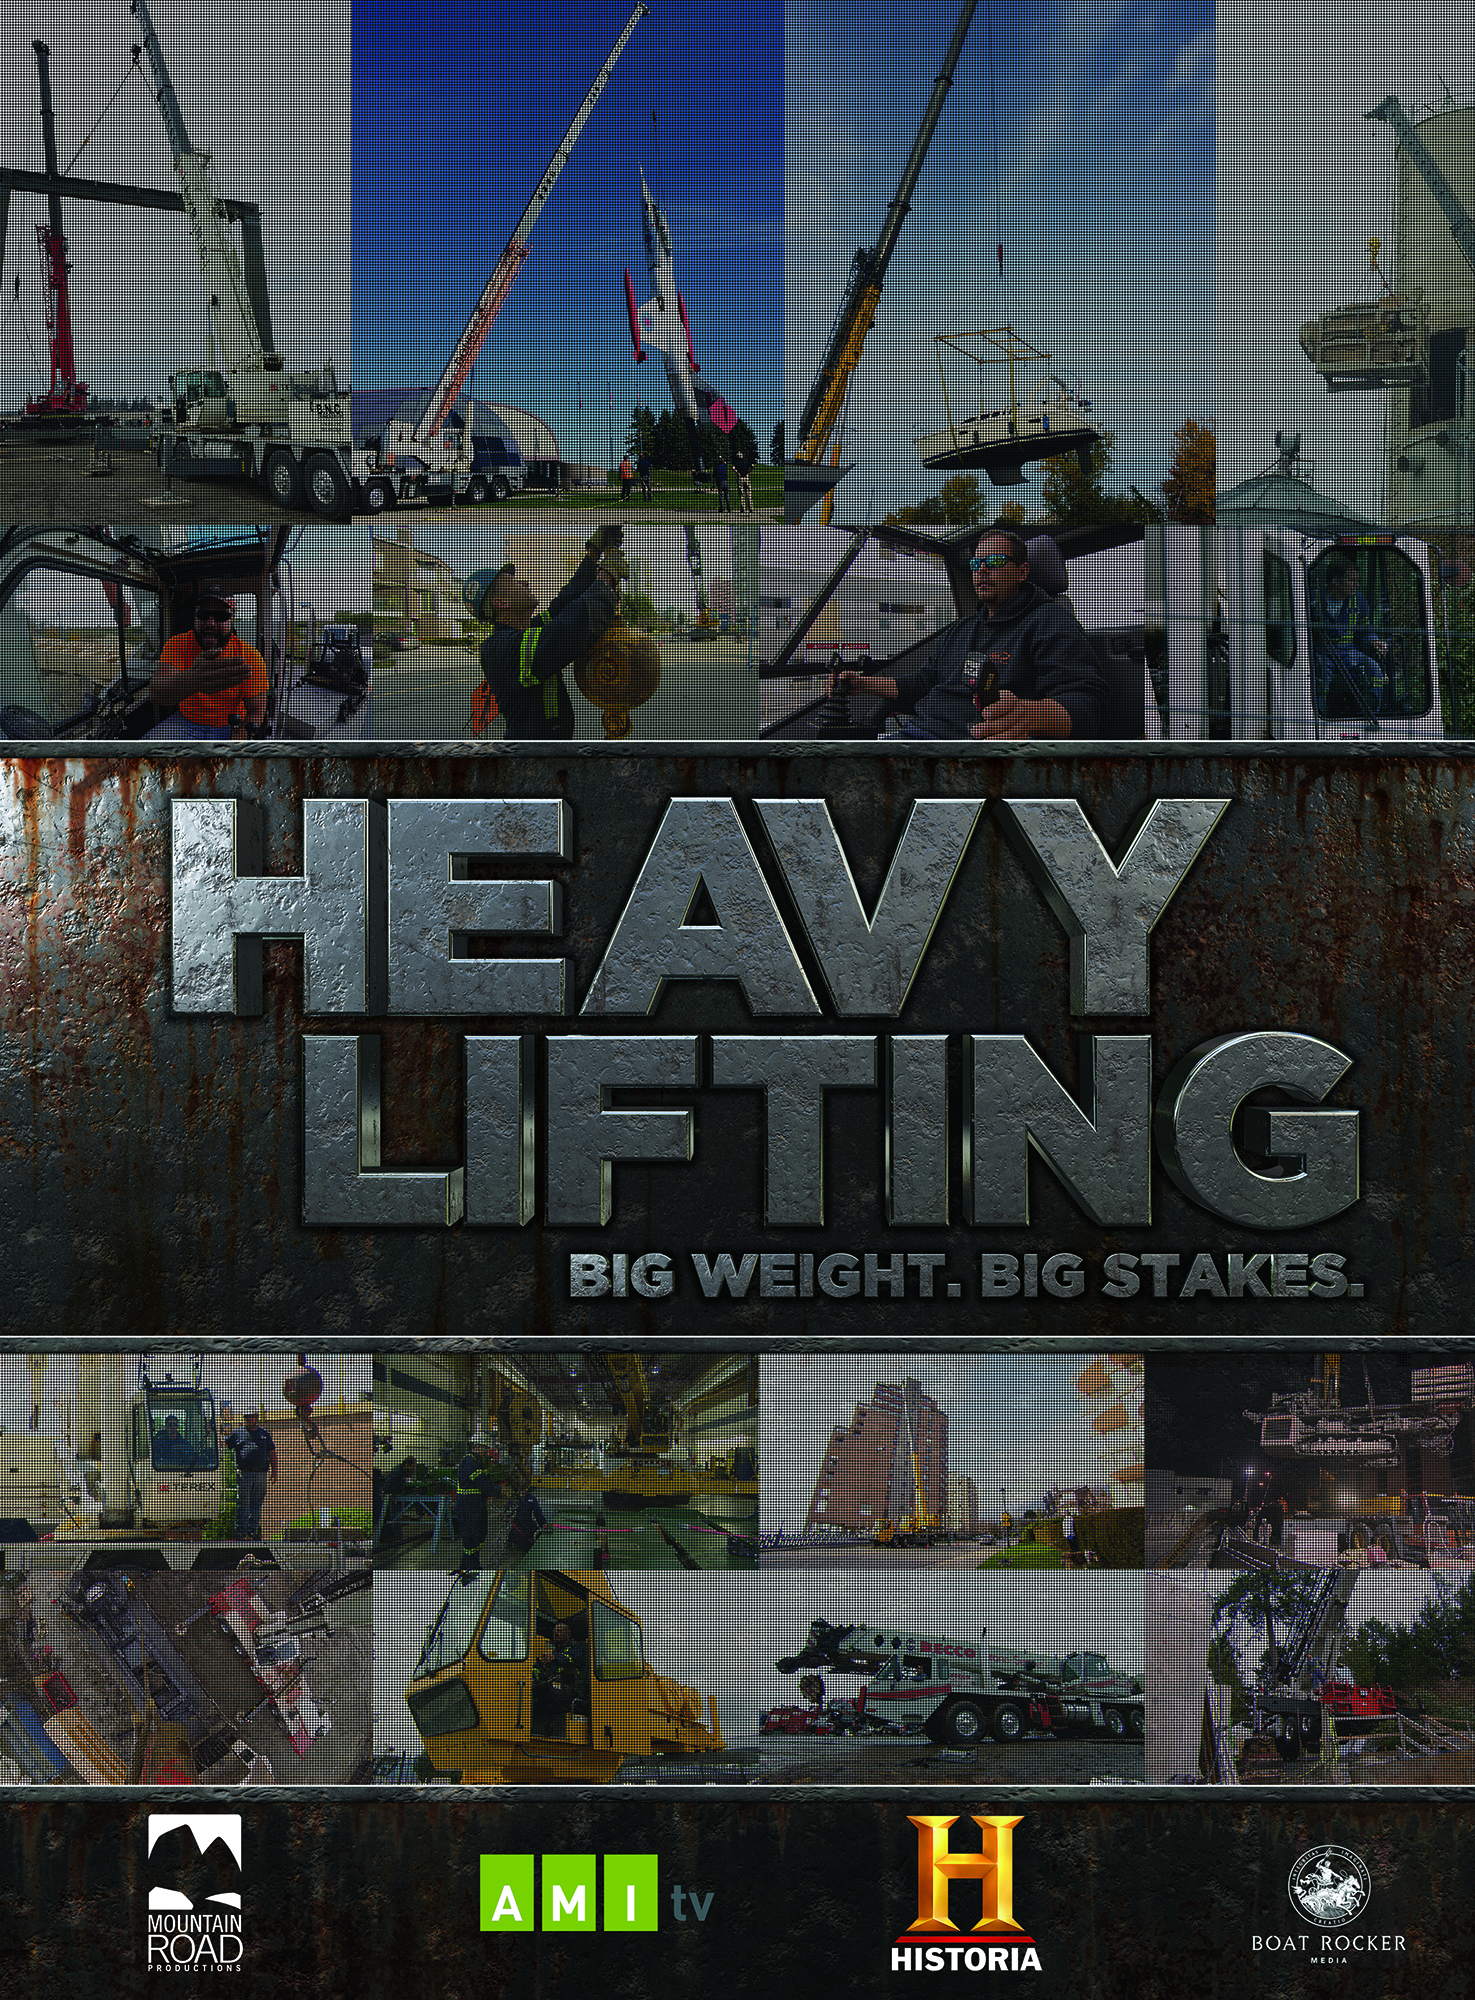 HeavyLifting_PosterBG_v04_deliver